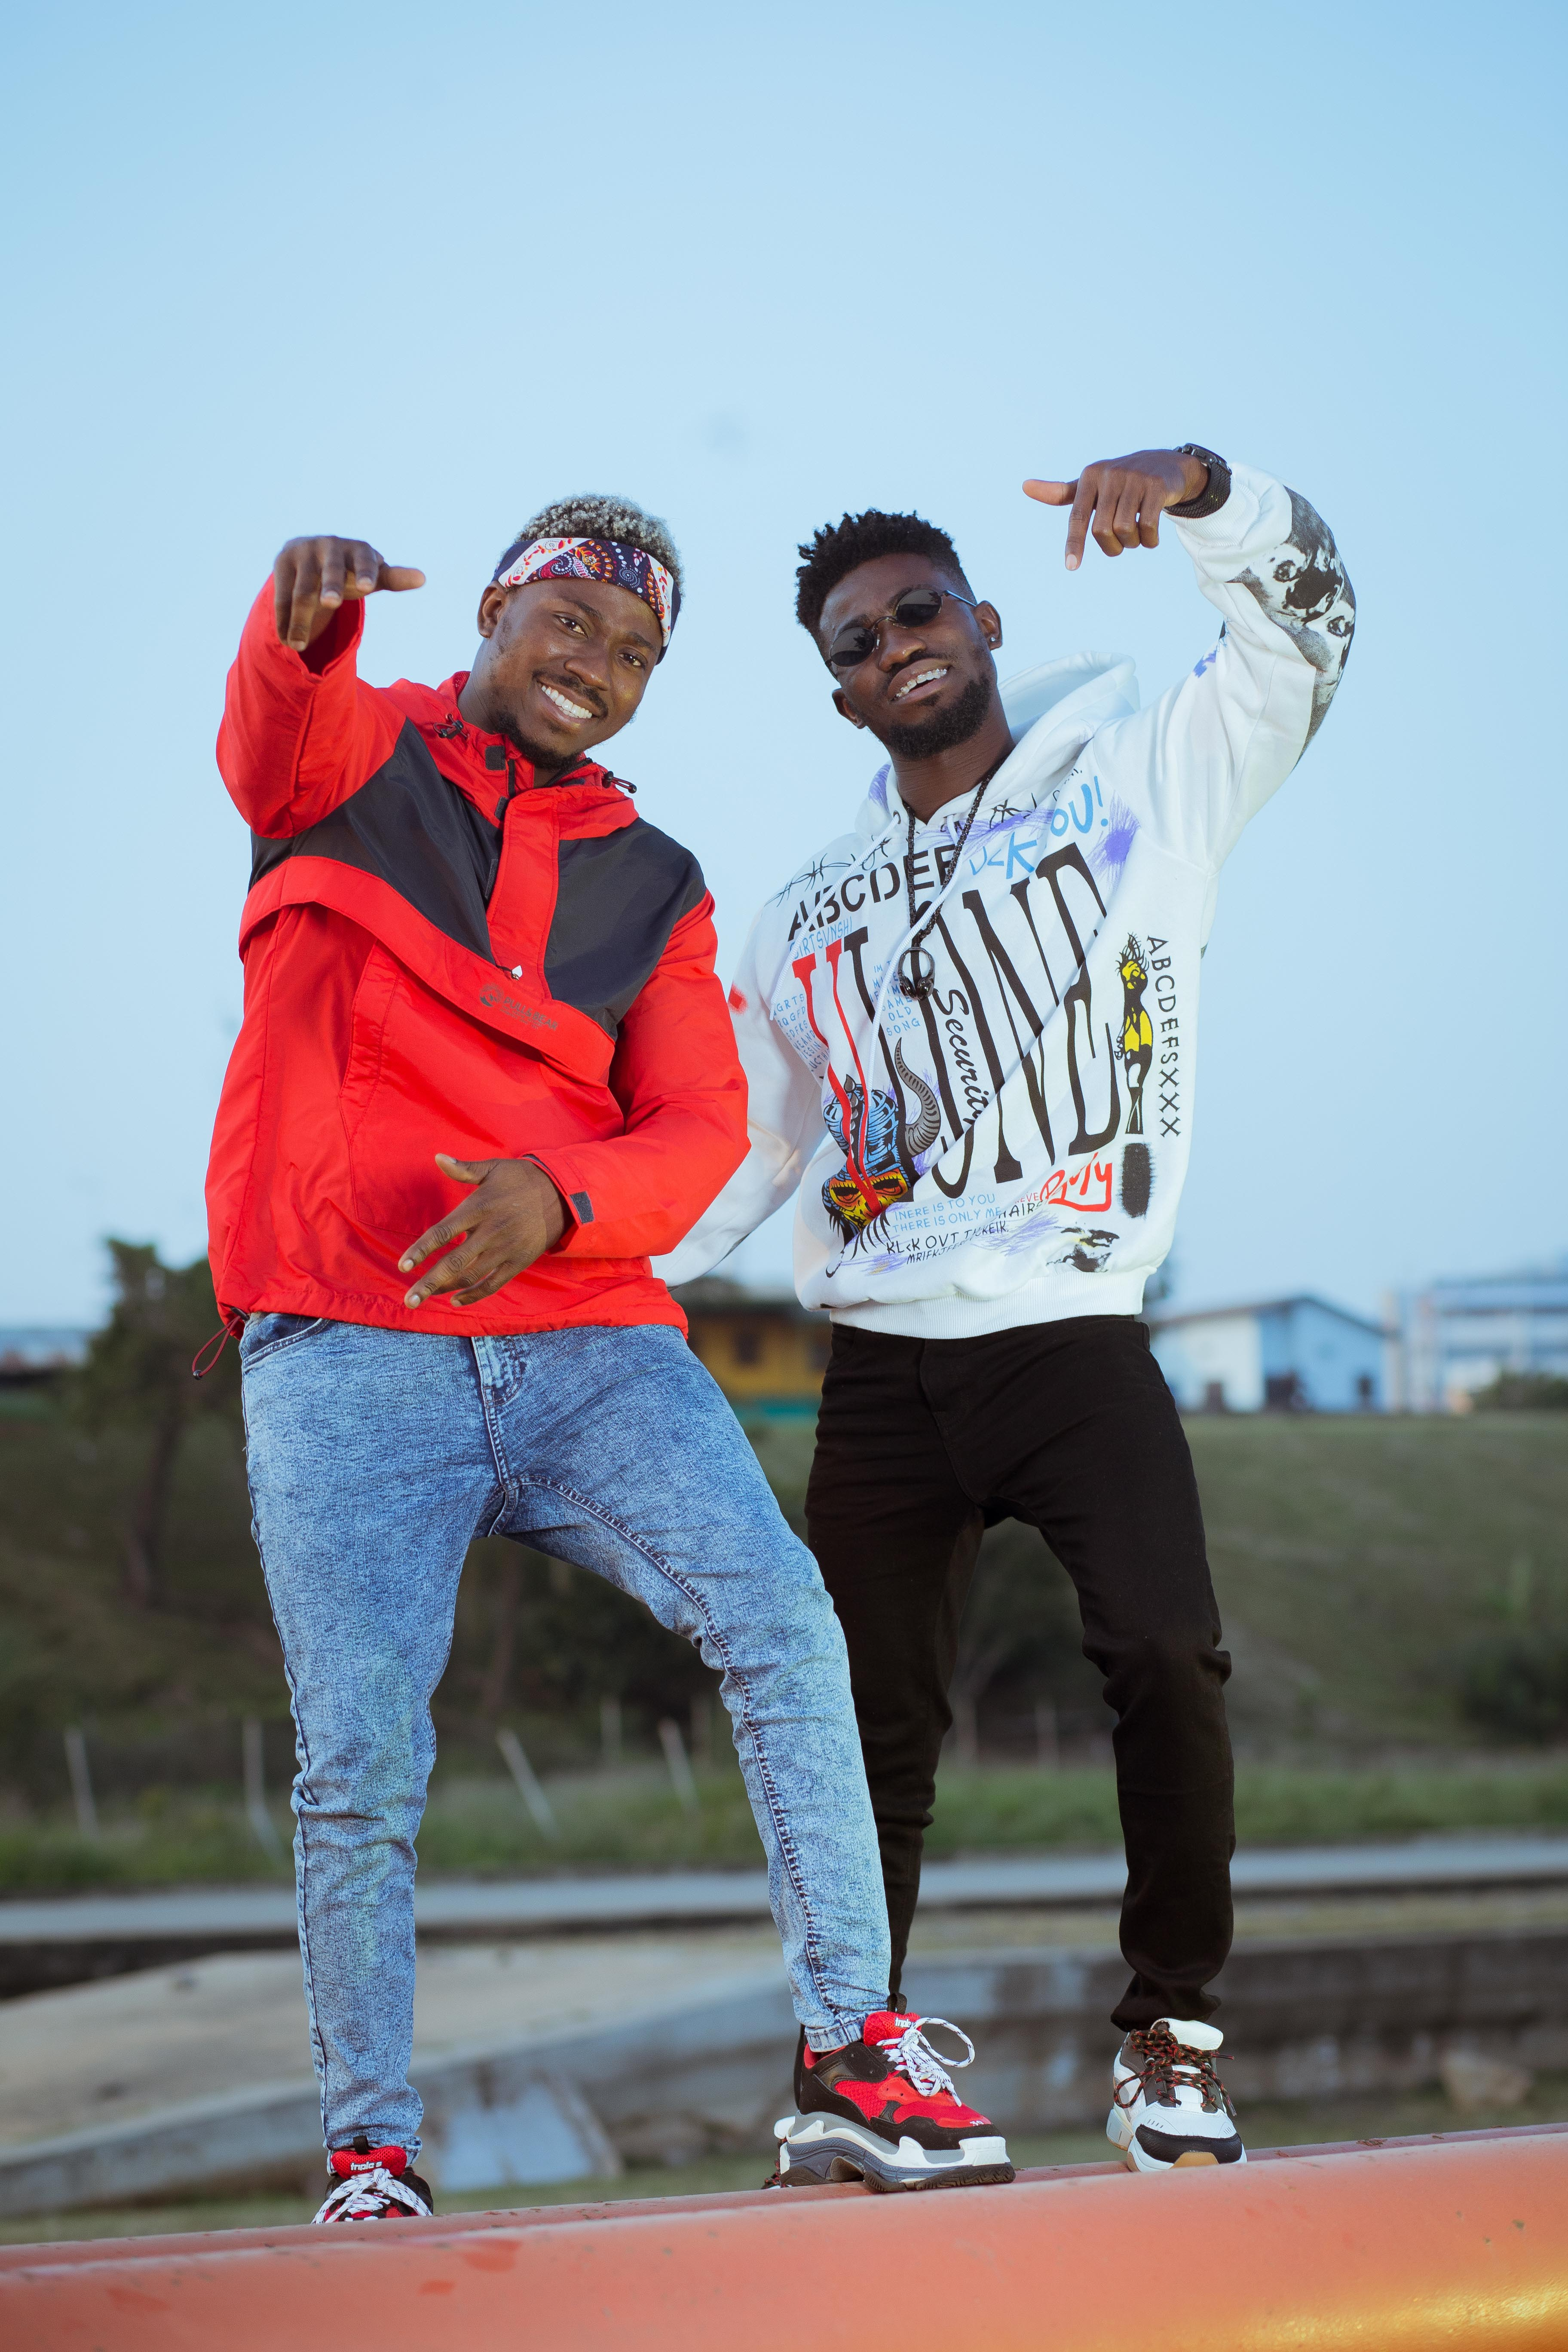 We have the best music video in Ghana currently - ZeeTM